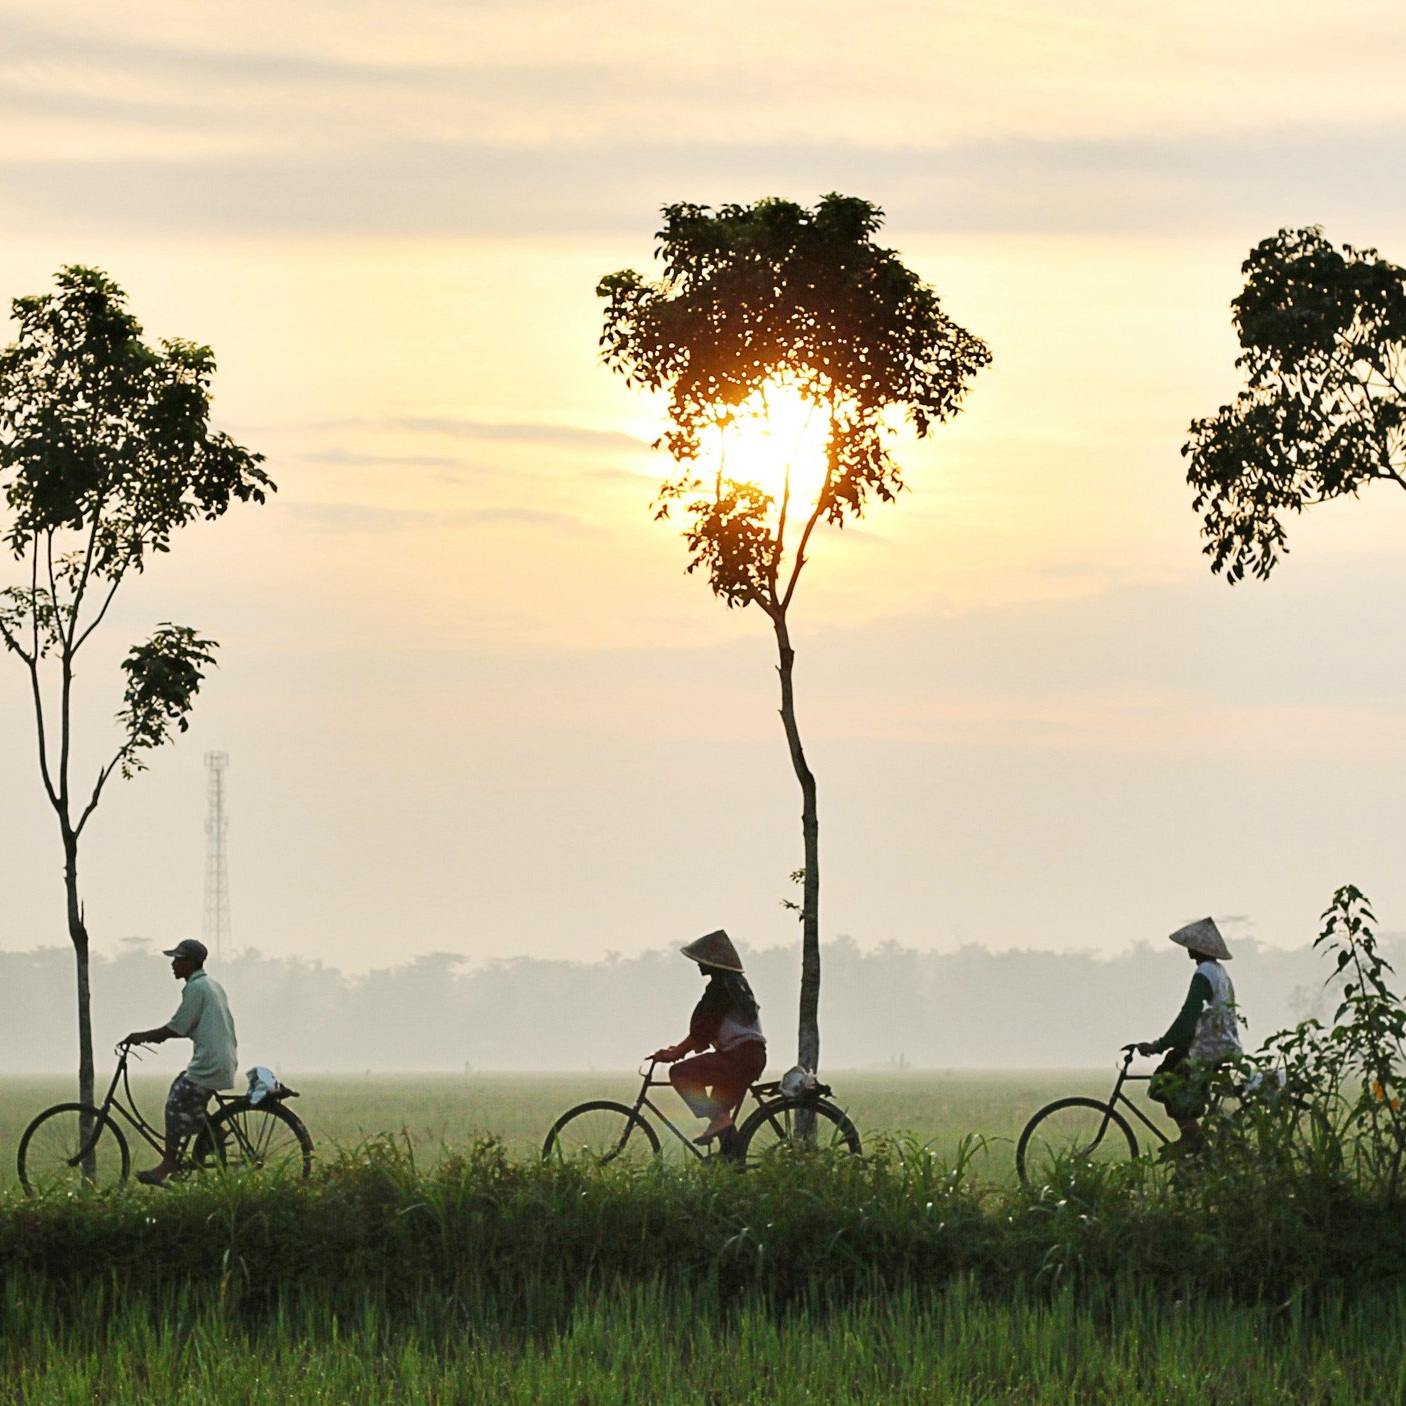 """- Hannah Balfour, Galle local - """"Idle Bikes Tours are a unique way to explore the local area - you get to ride through paddy fields, spot local wildlife such as buffalo and peacocks - and occasionally you also get to conquer a big hill""""."""